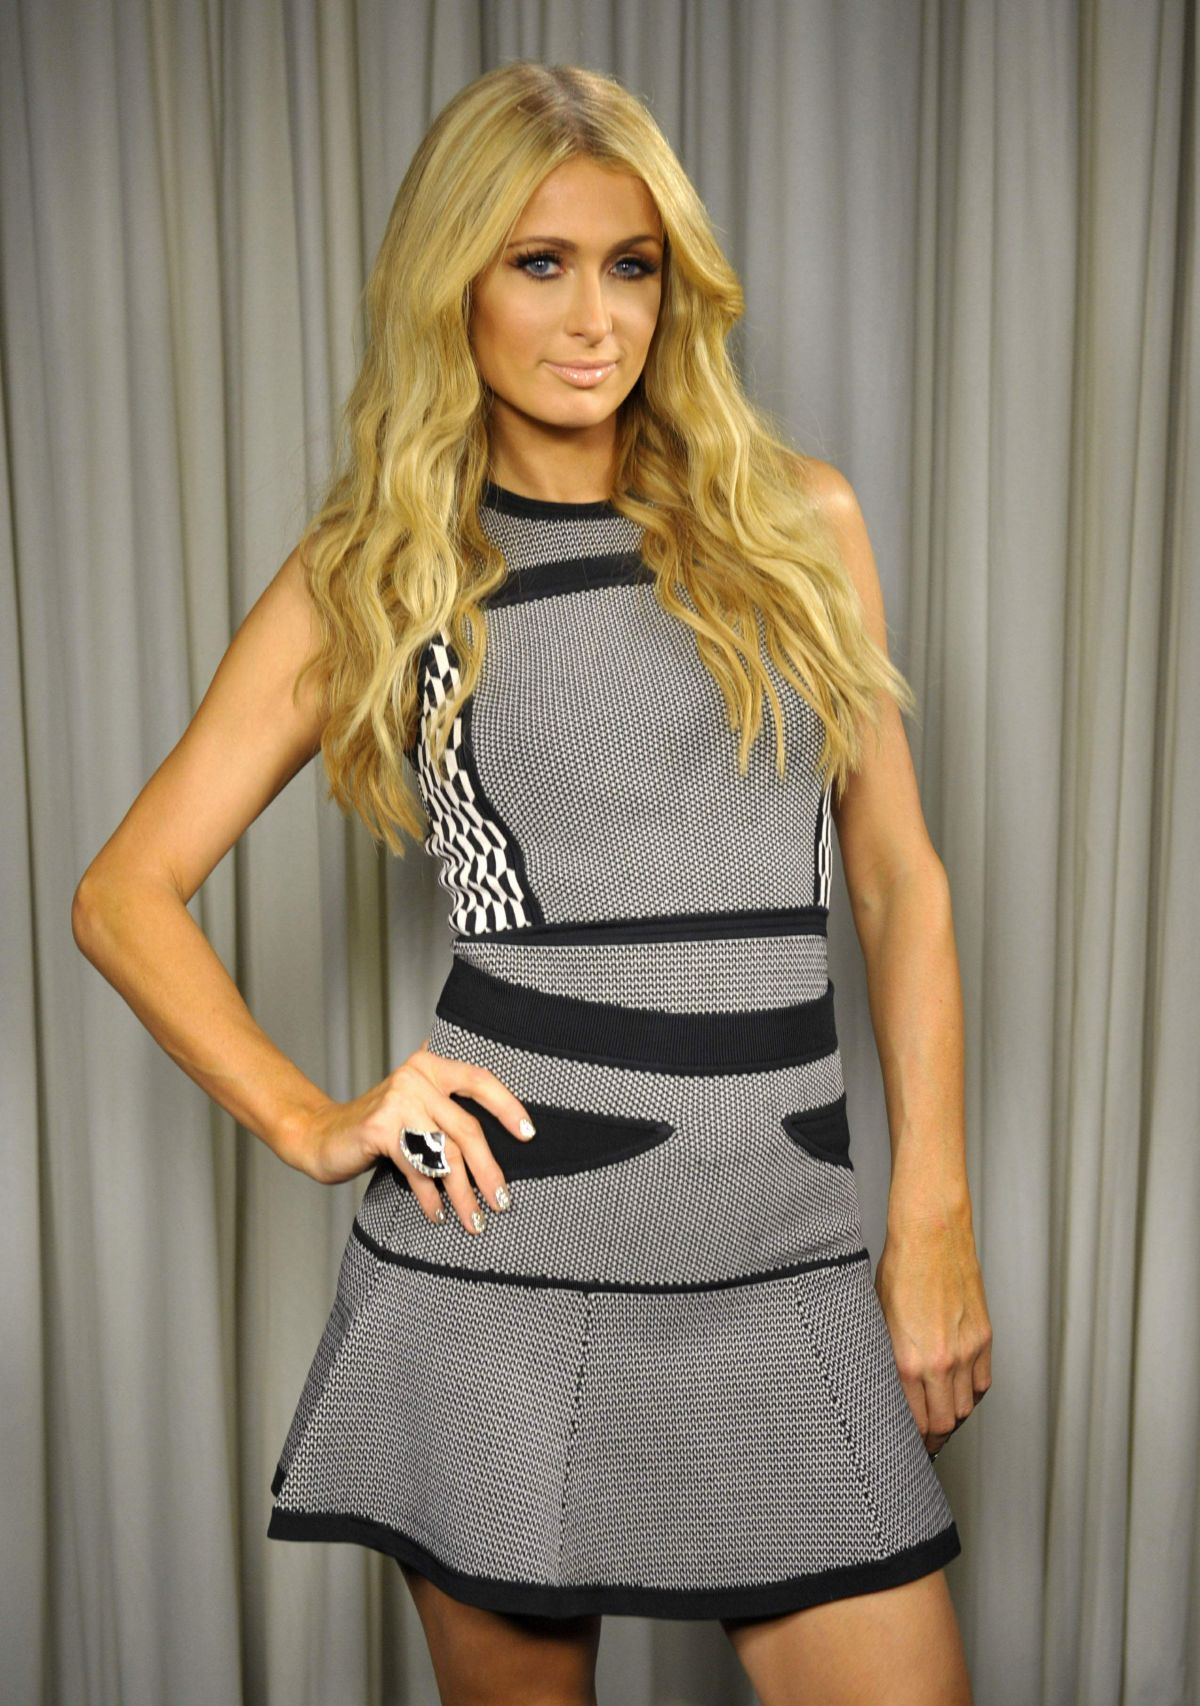 Paris Hilton Poses For a Portrait, Los Angeles October 2013